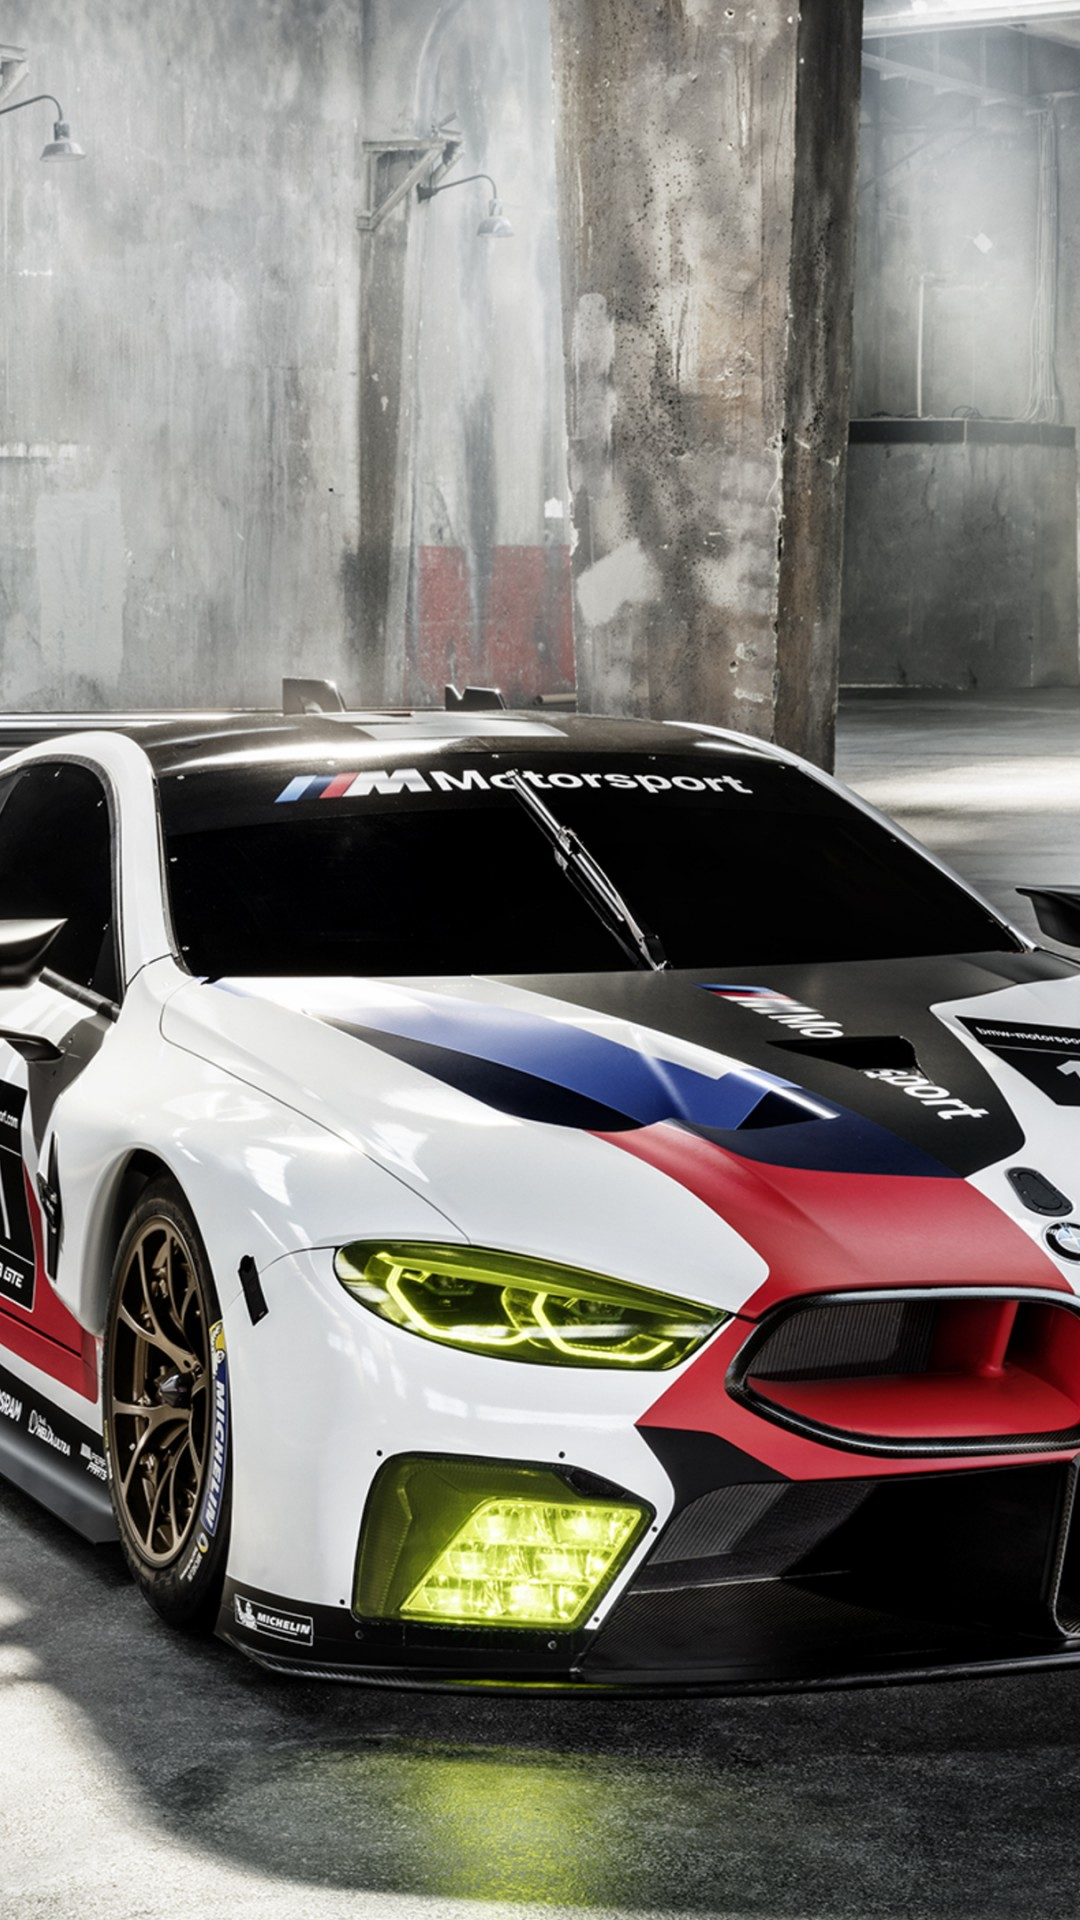 Wallpaper Bmw M8 Gte 2018 Cars 4k Cars Amp Bikes 15768